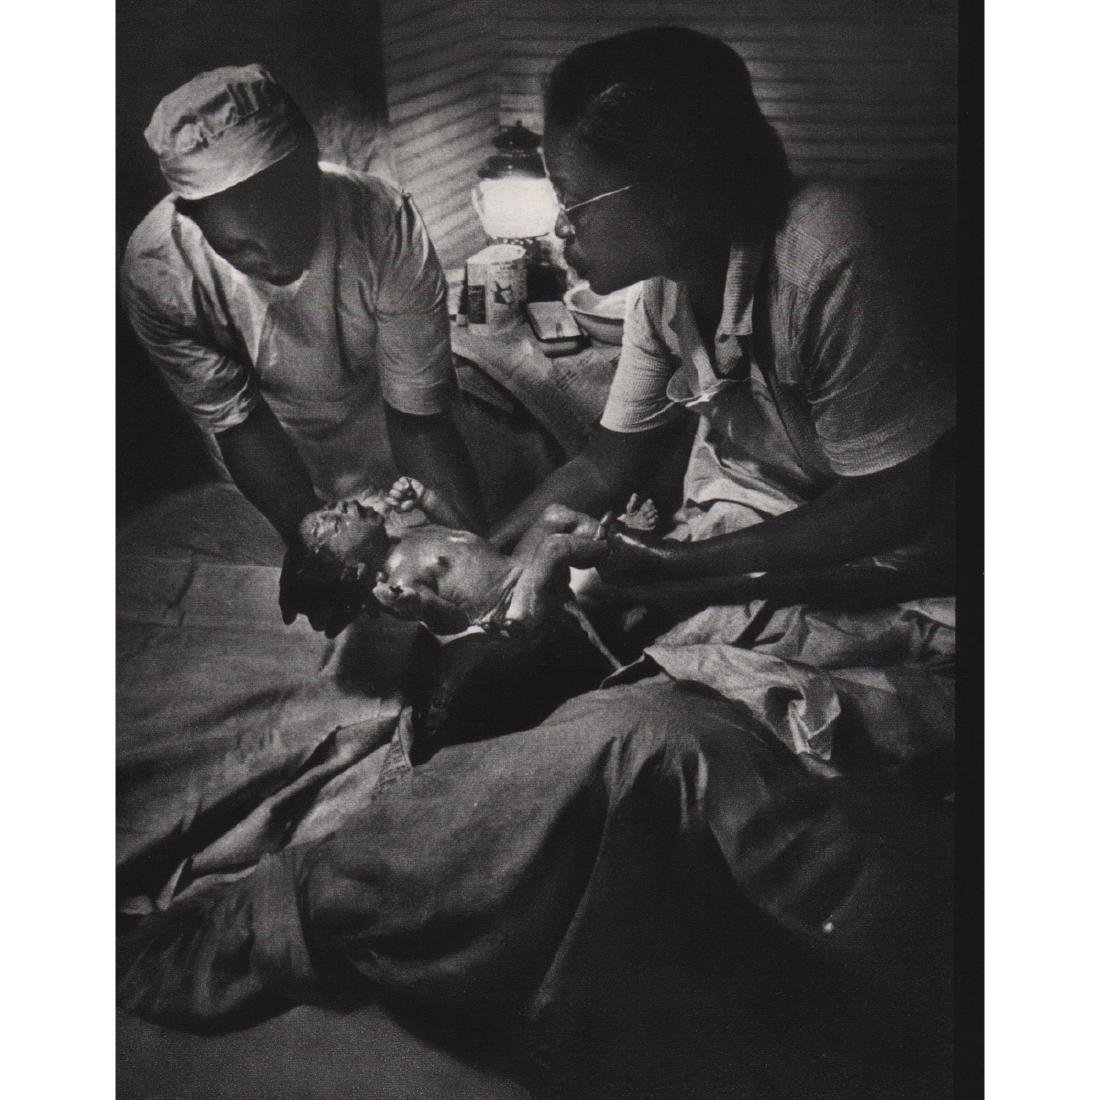 w. eugene smith nurse midwife photo essay What were some of w eugene smith's better known photo essays nurse-midwife, dr albert schweitzer, and a spanish village who does much of the credit for popularizing photography go to.